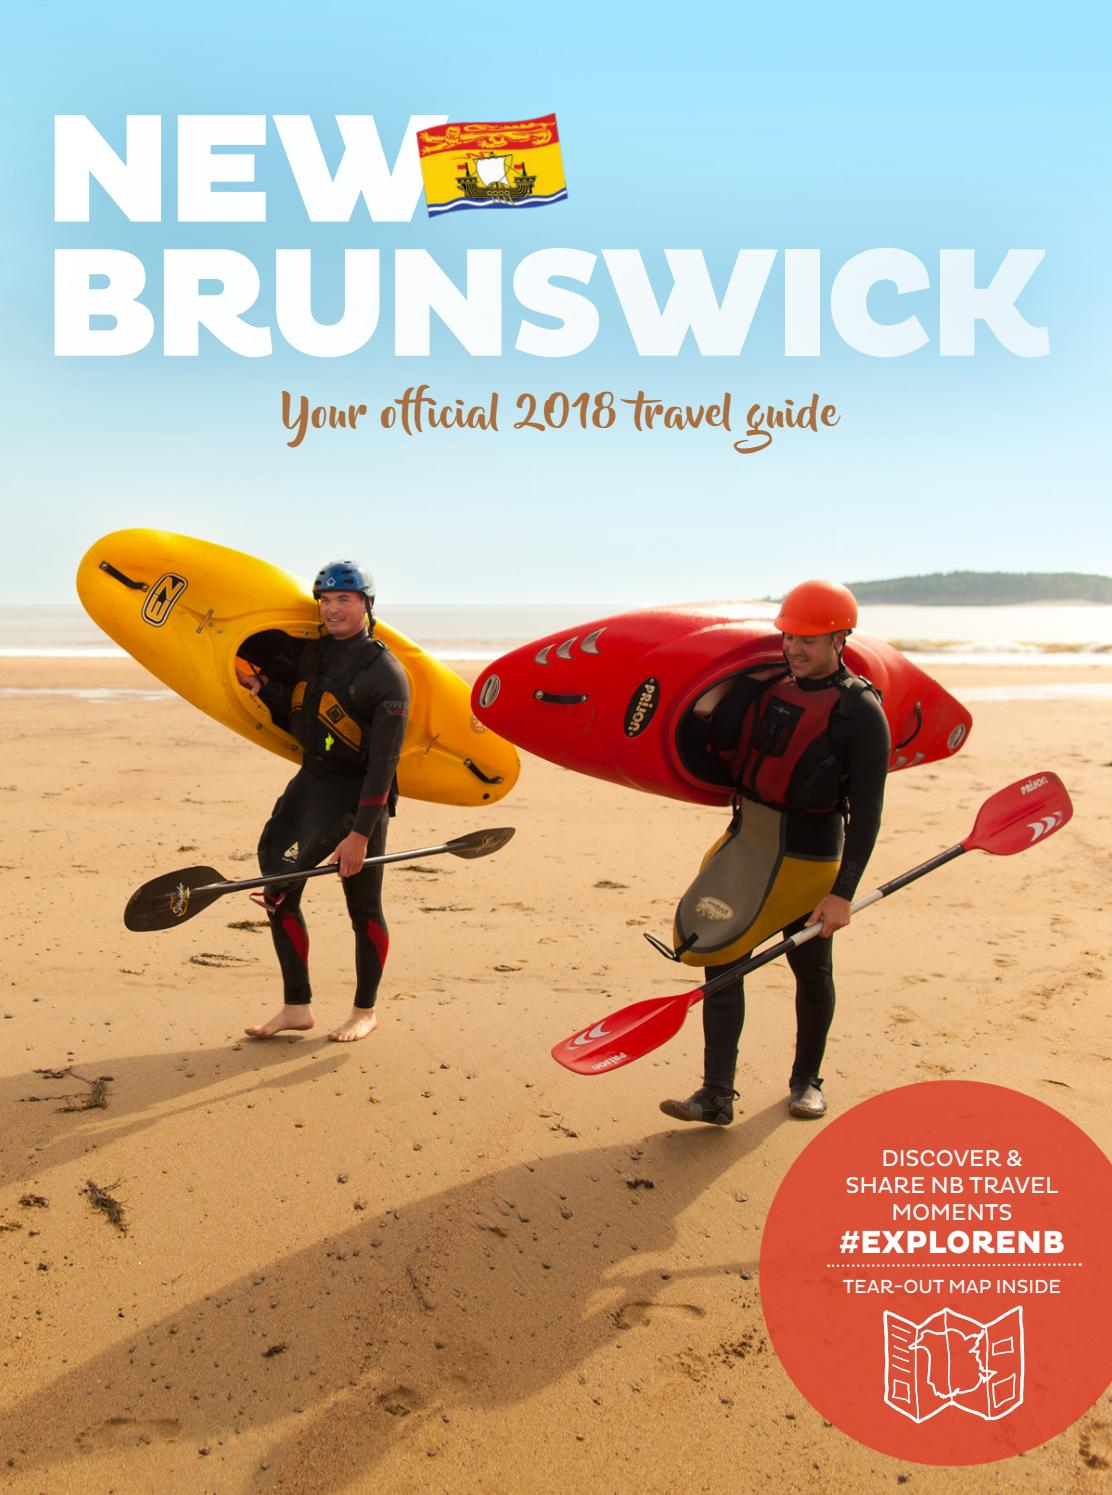 7a2a8d2a93 OFFICIAL 2018 NEW BRUNSWICK TRAVEL GUIDE by Official New Brunswick ...